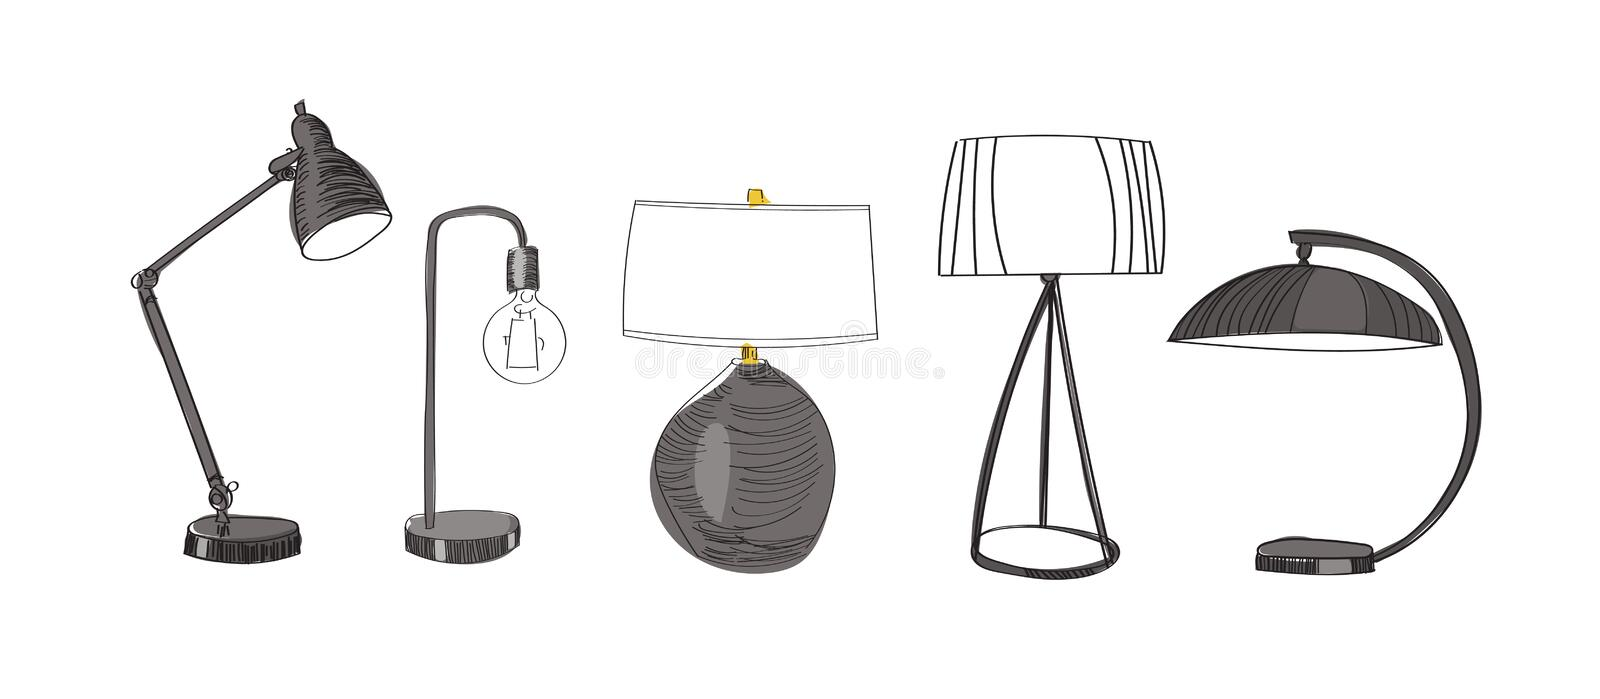 Pencil sketch table lamp design collection on white background table lamp design collection on white background hand drawing stock aloadofball Image collections